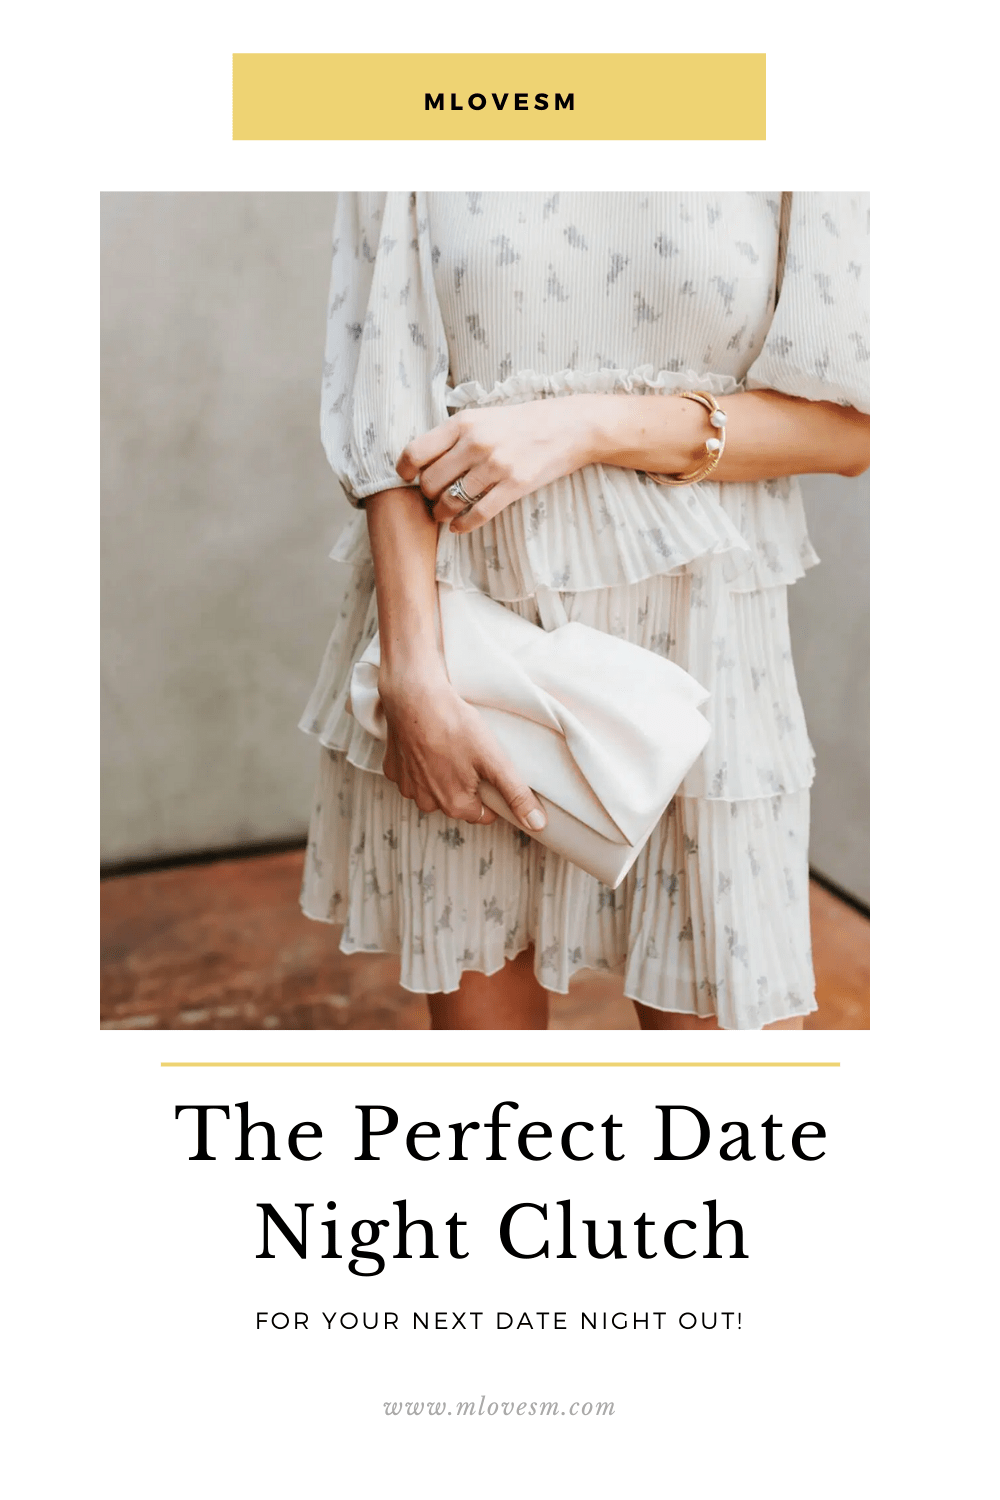 Here's the perfect date night clutch! - M Loves M @marmar